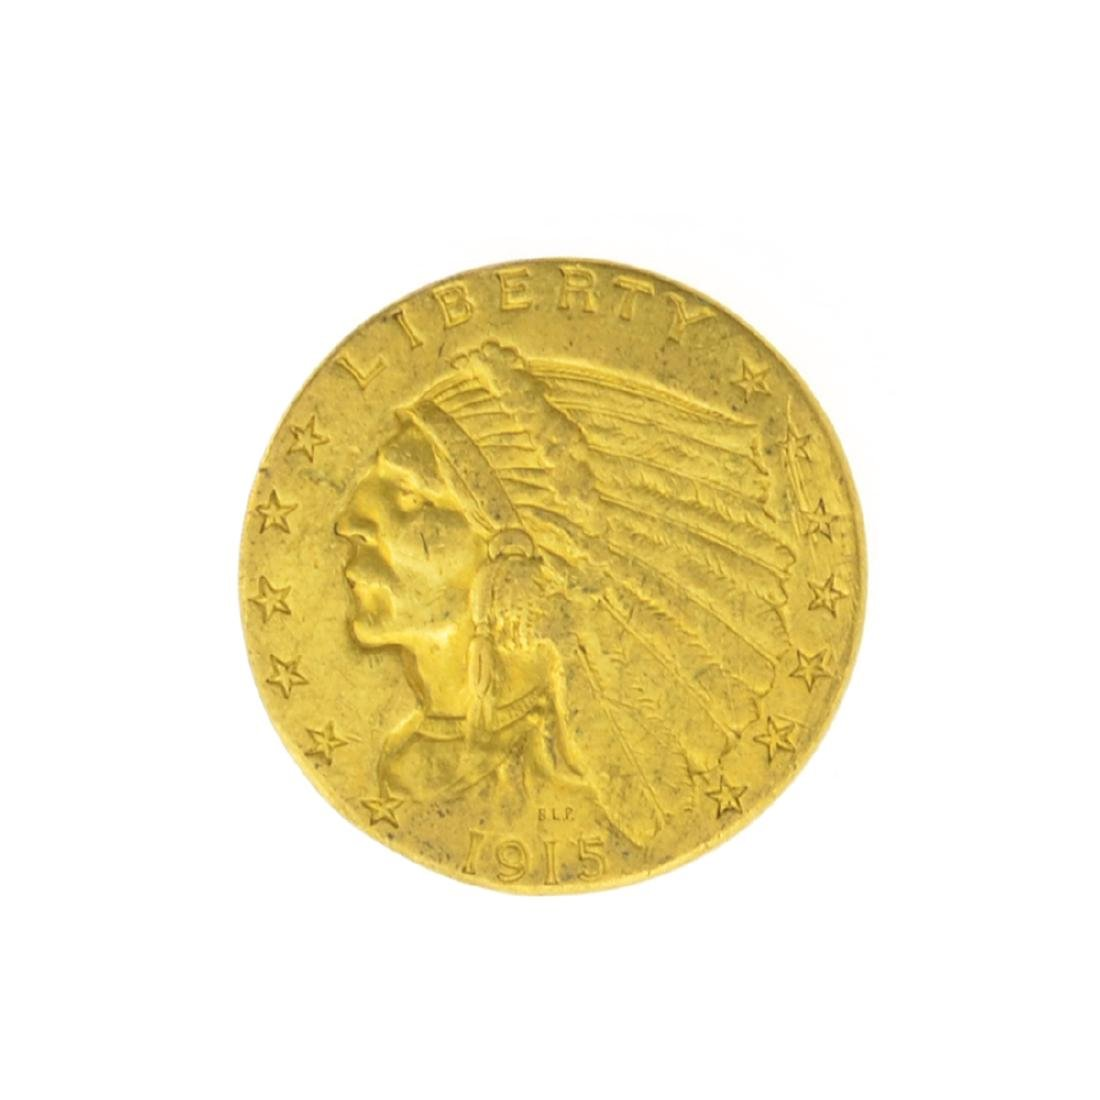 *1915 $2.50 U.S. Indian Head Gold Coin (JG)